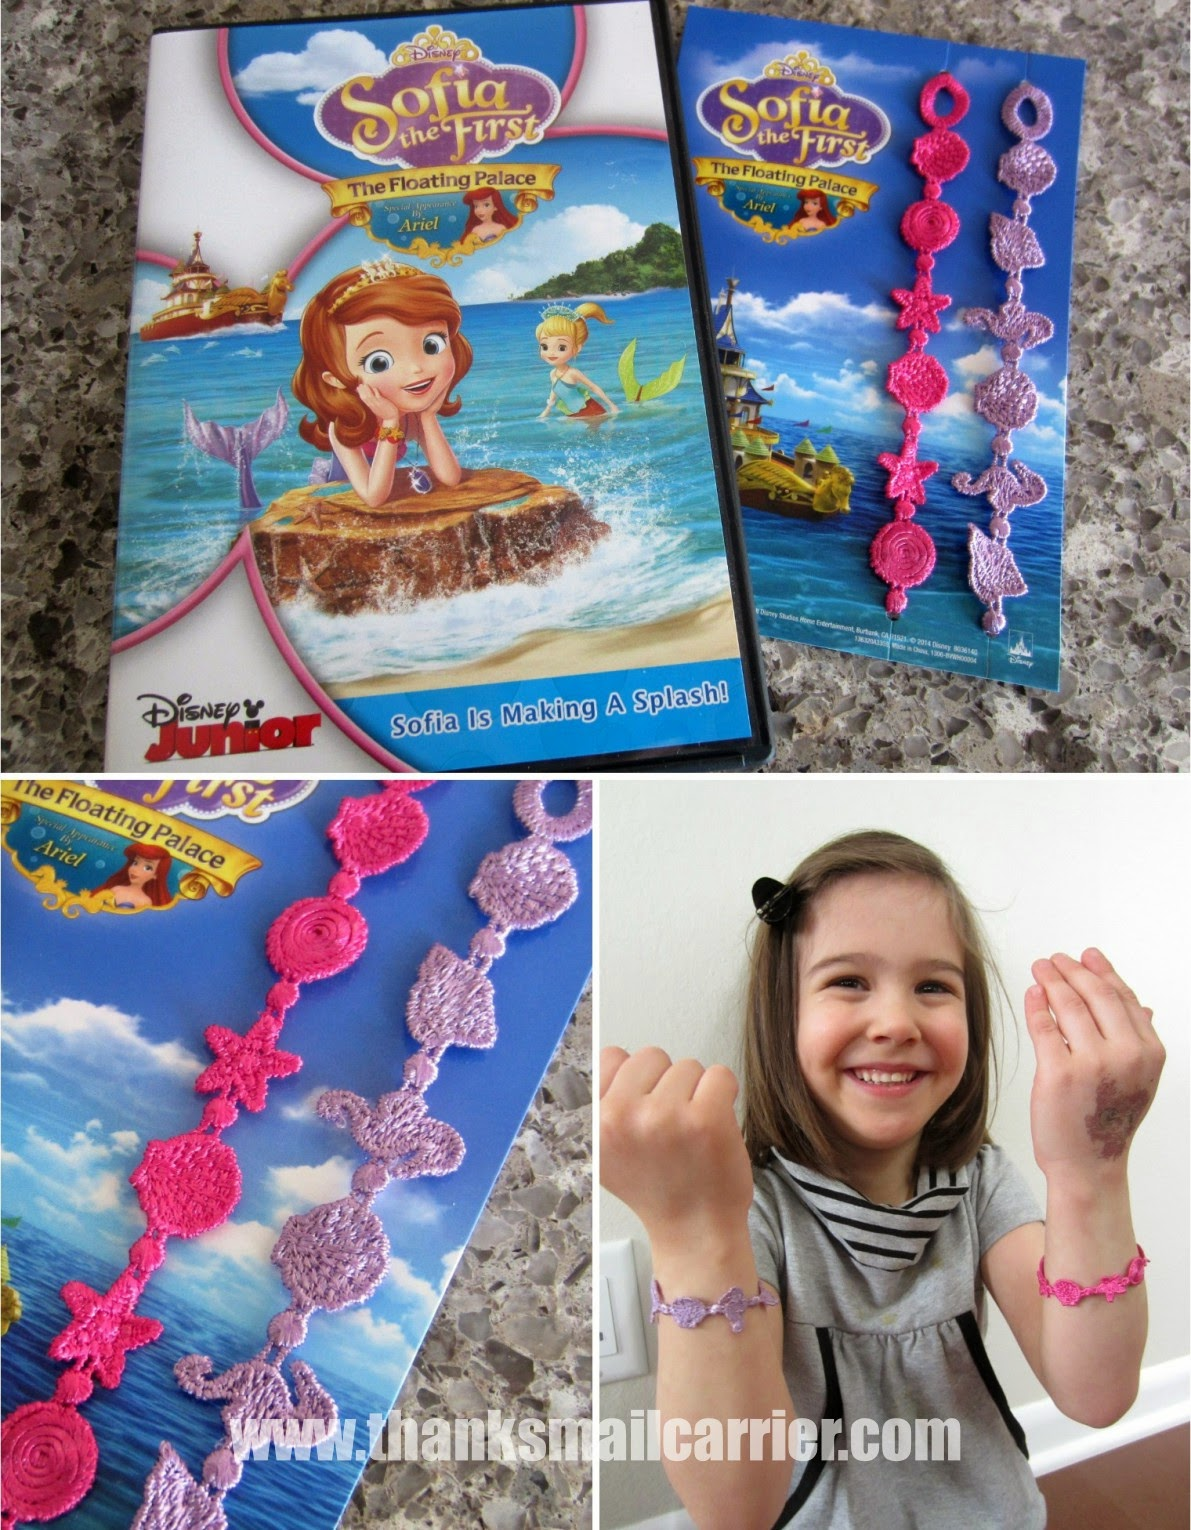 Sofia the First The Floating Palace DVD